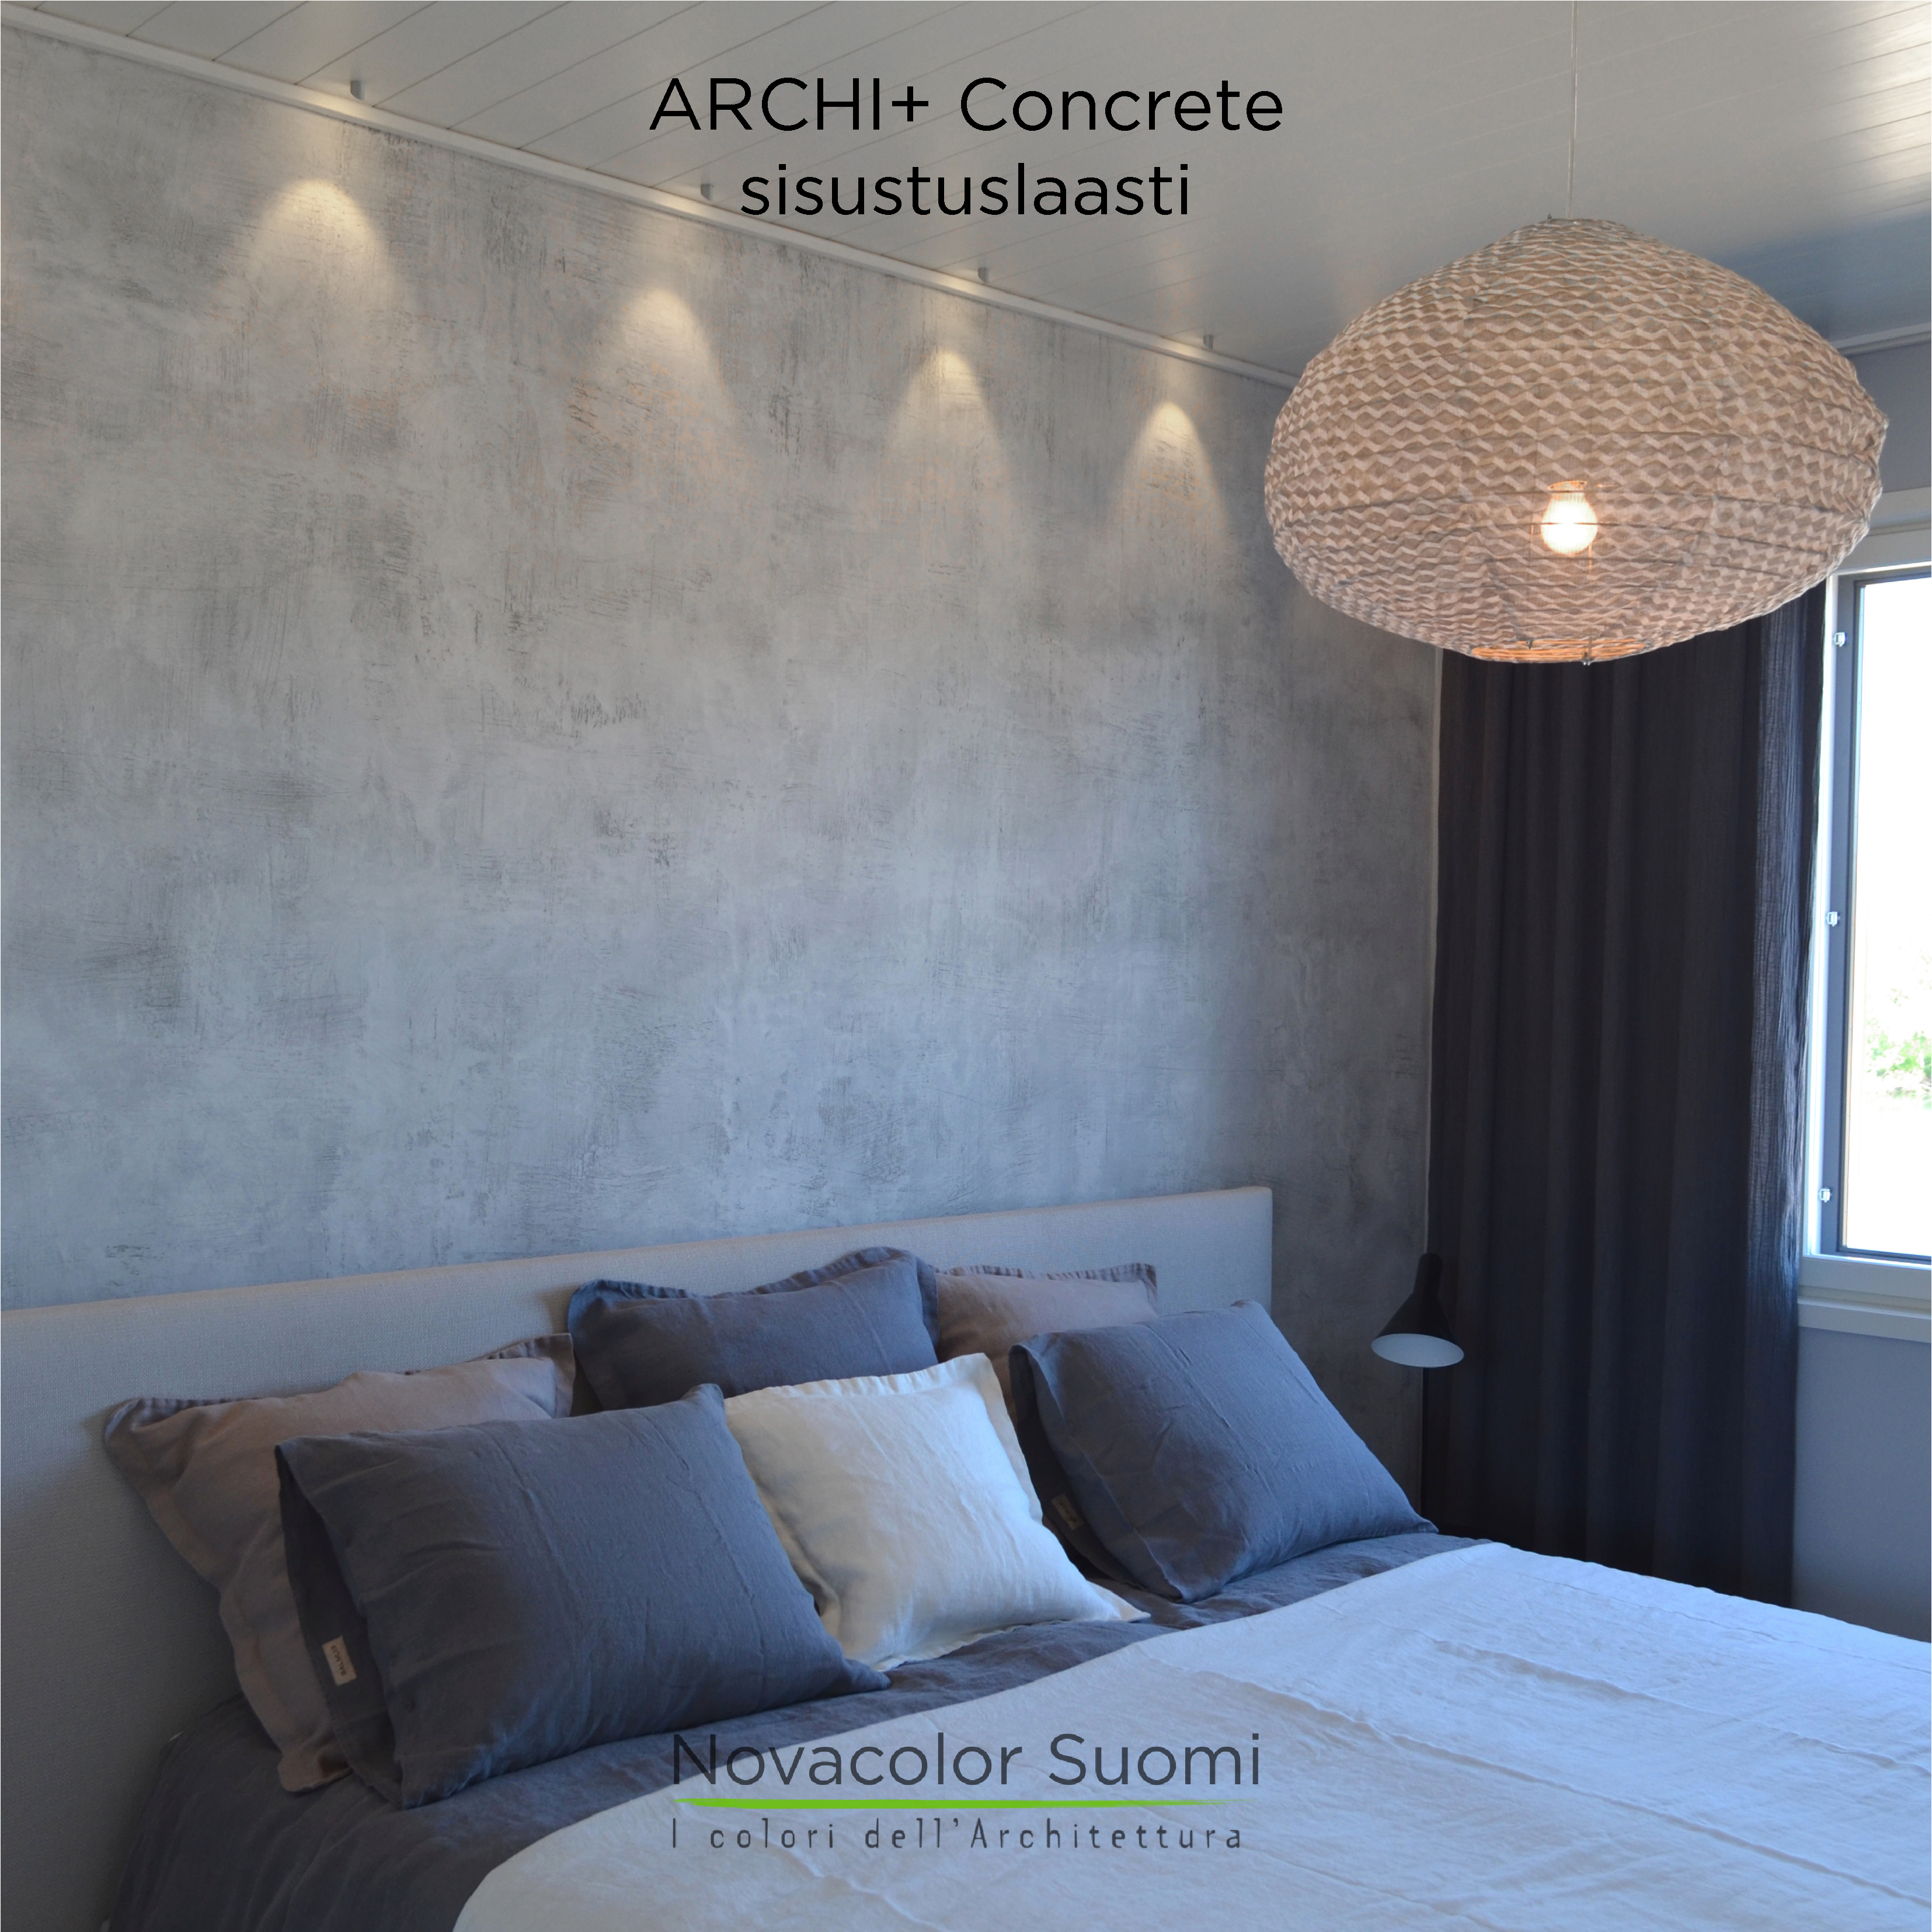 2014 Holiday Housing Fair in Kalajoki, Finland - Bedroom wall made by Novacolor Archi+Concrete (AP6101) NS